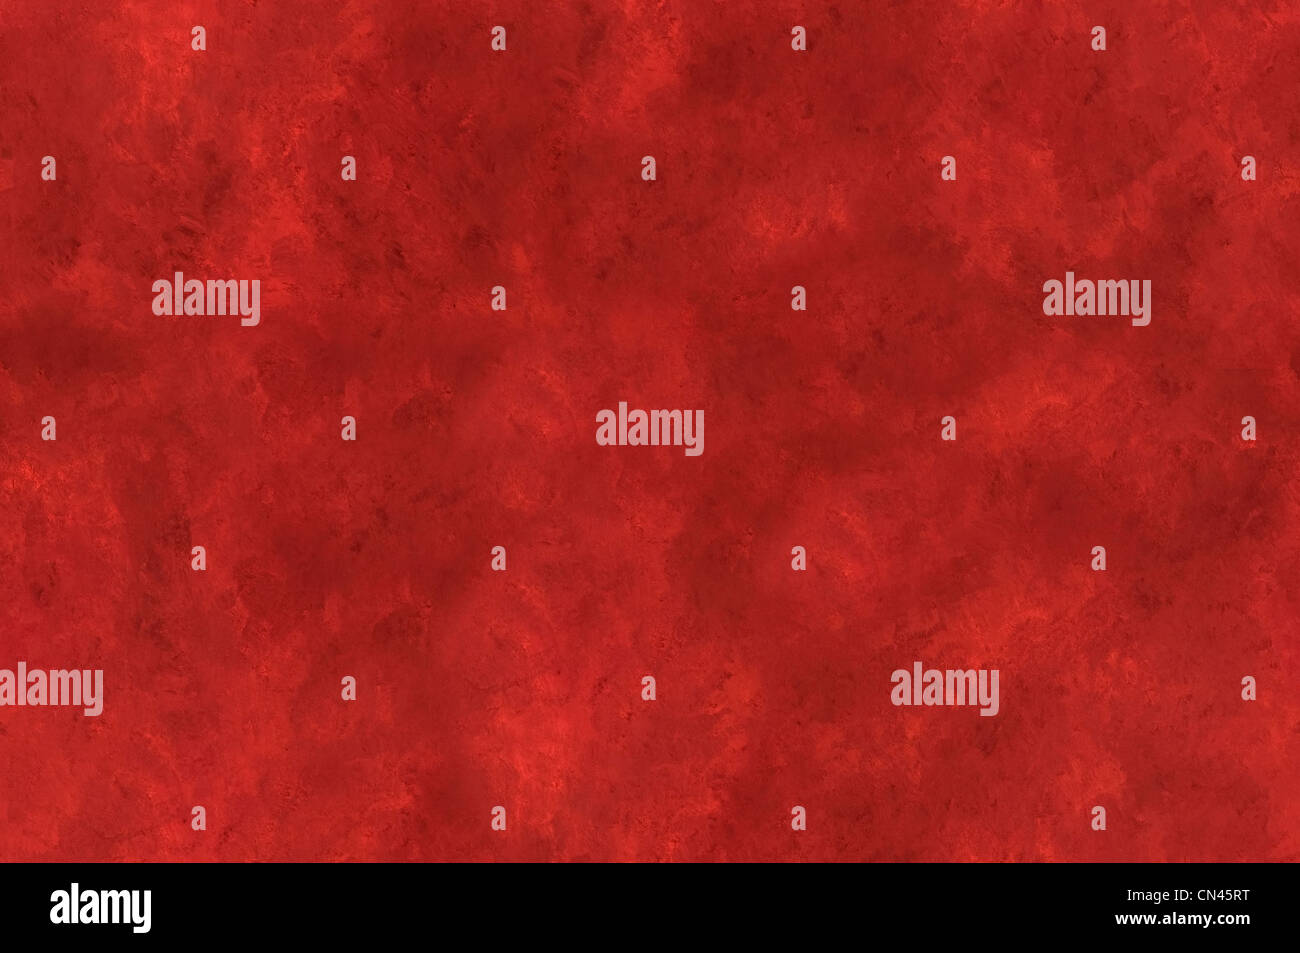 Red mottled canvas background seamlessly tileable - Stock Image